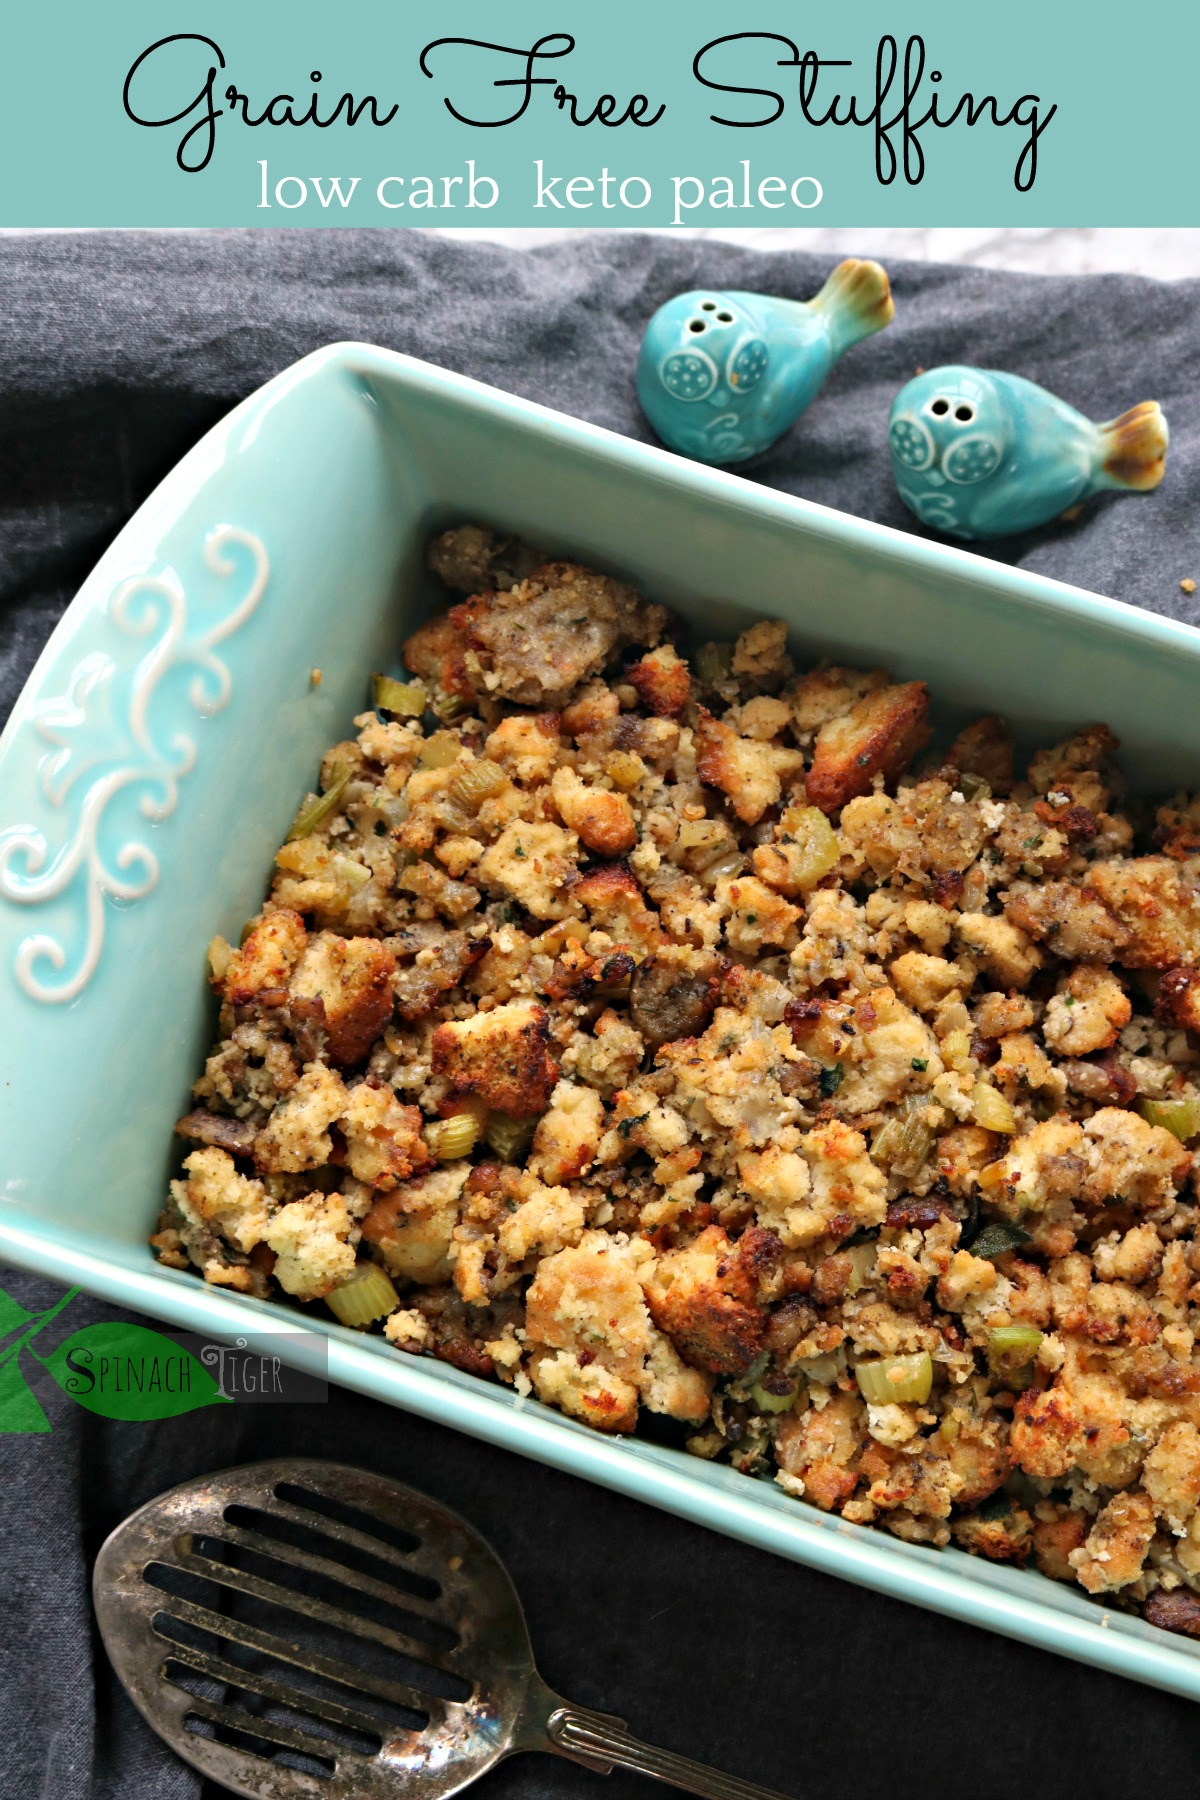 Grain Free Stuffing from Spinach Tiger